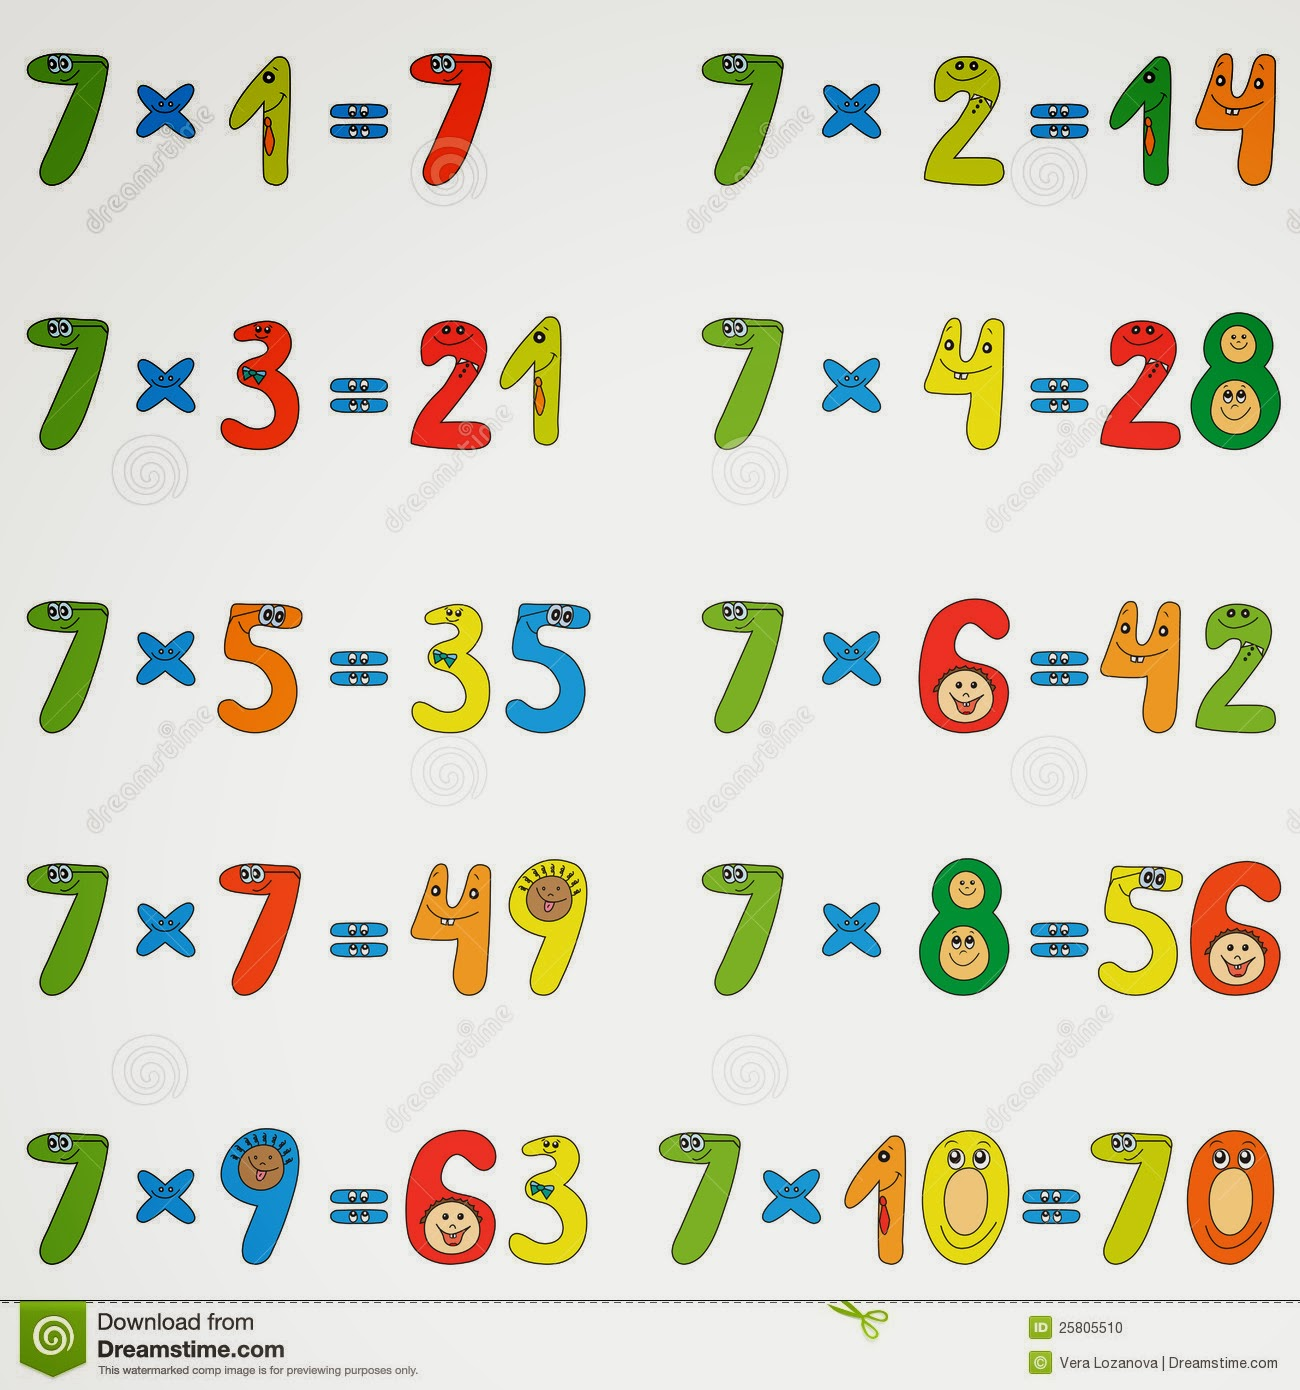 Multiplication table de multiplication 6 7 8 9 for Table de multiplication de 7 8 9